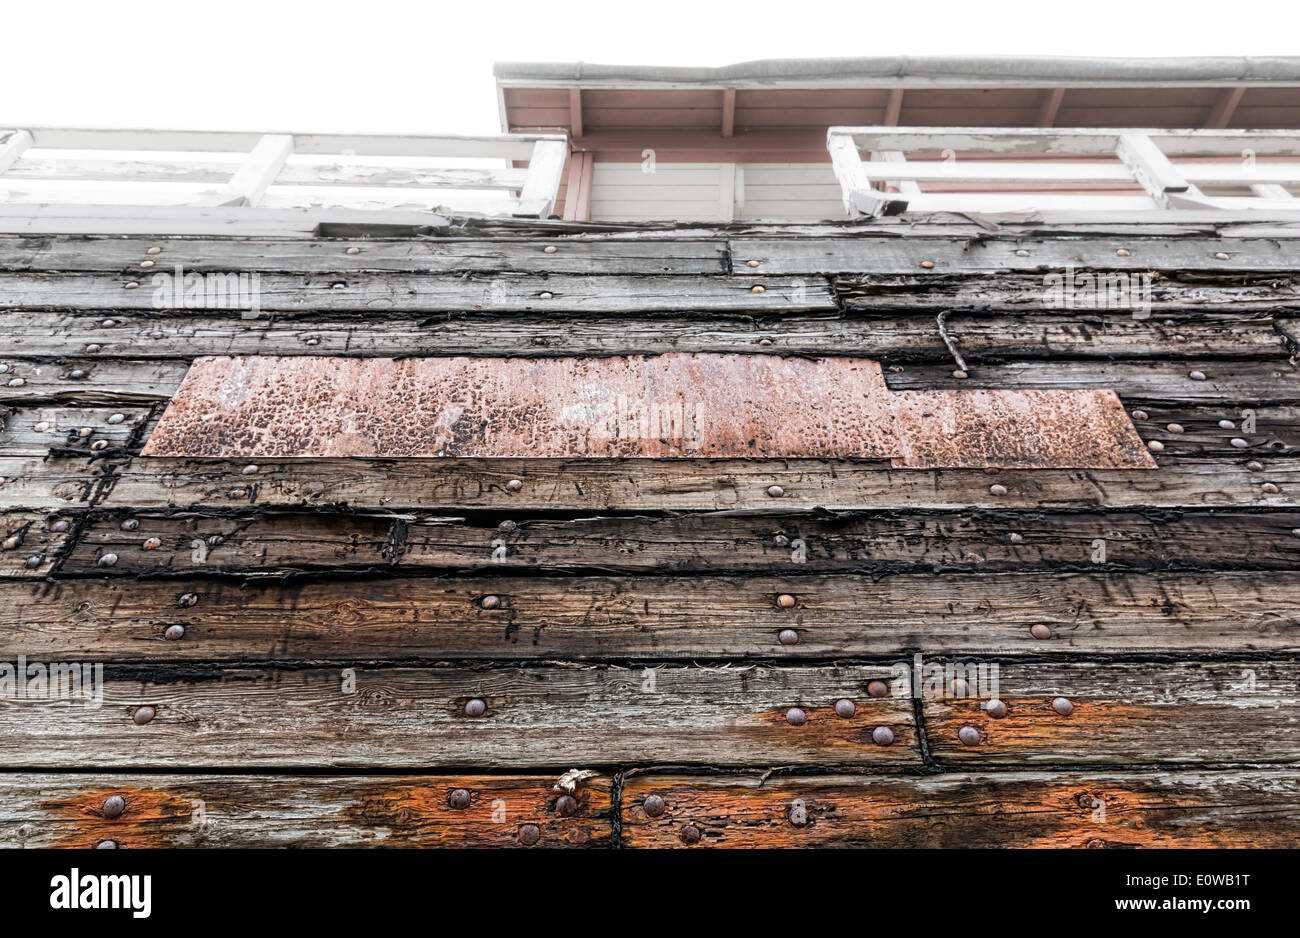 Old outer wall of a wooden boat at a shipyard - Stock Image